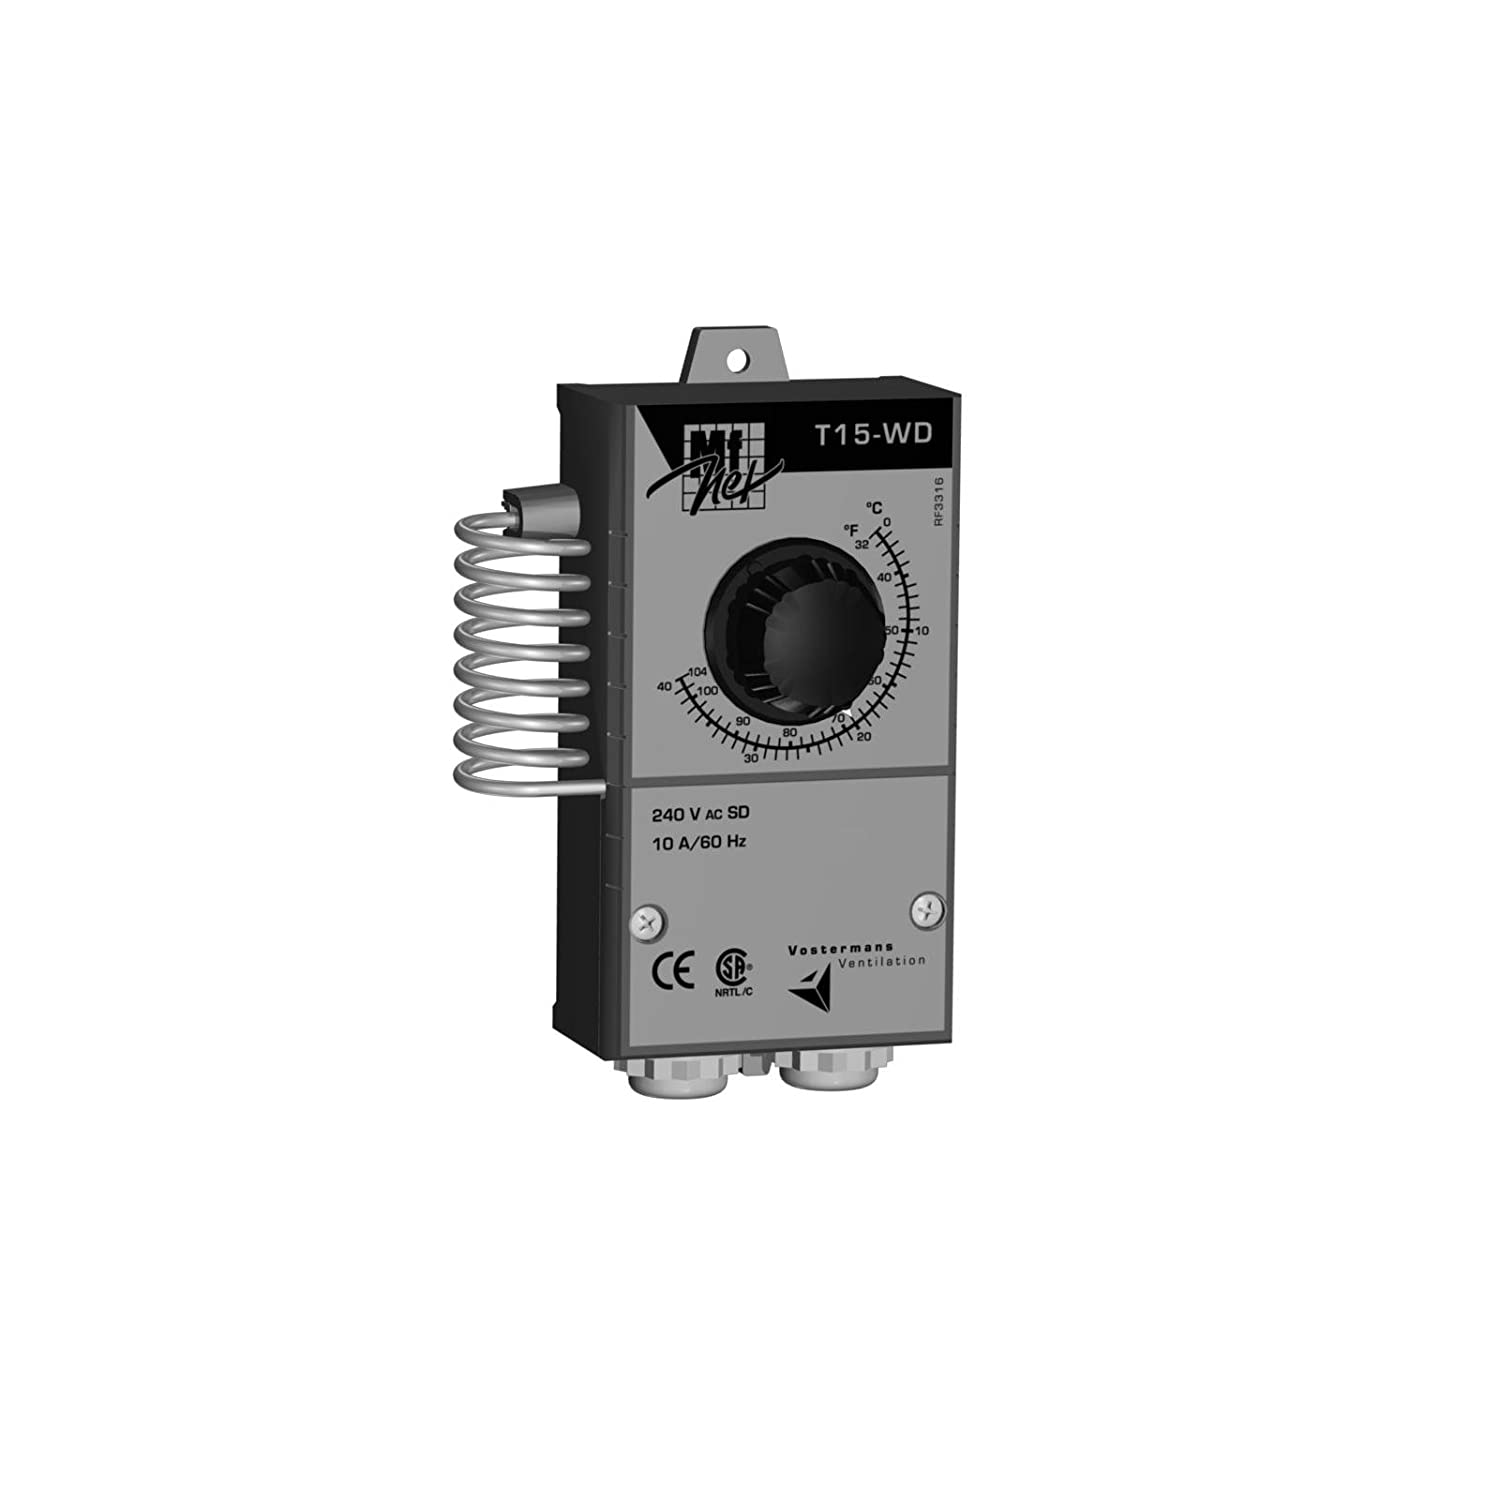 Multifan TT15WDCAM1A Single Stage Thermostat